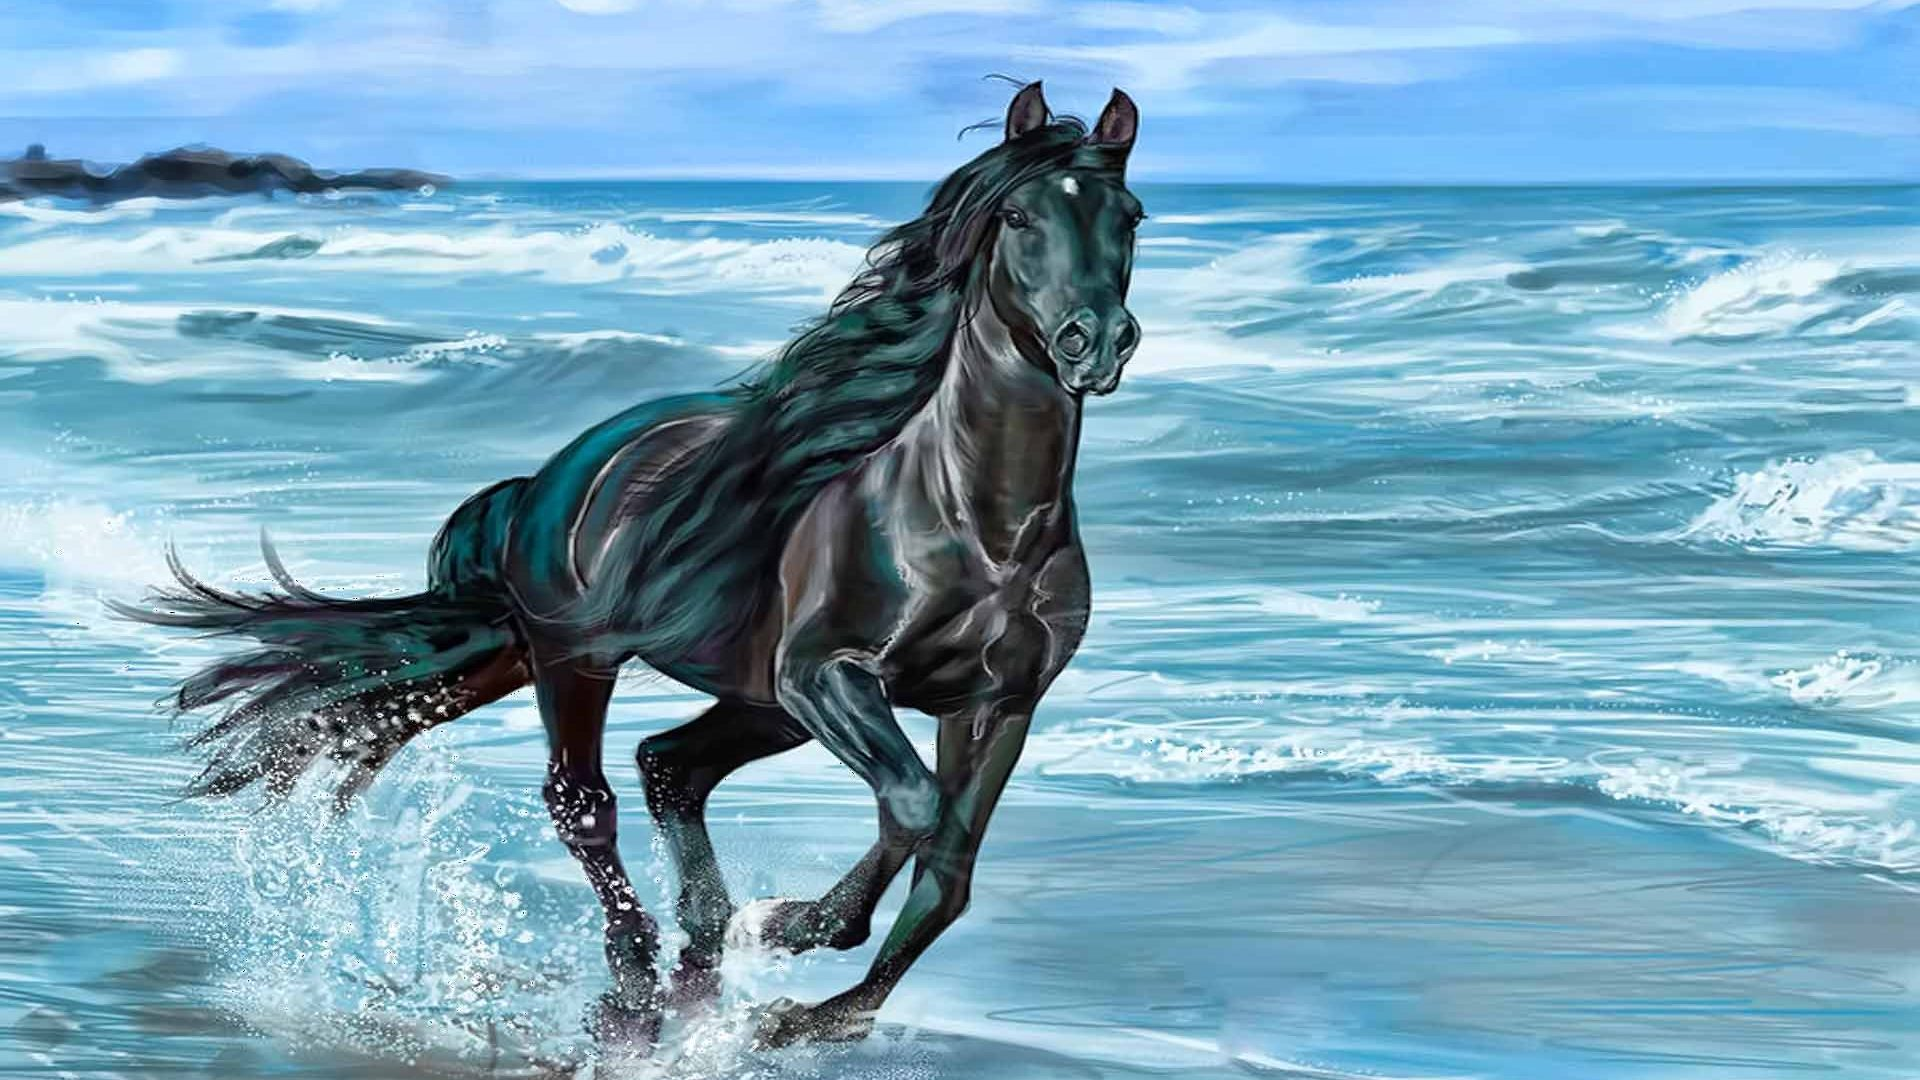 Black Horse Hd Picture Running Horse Wallpaper Desktop Background 1920x1080 Wallpaper Teahub Io